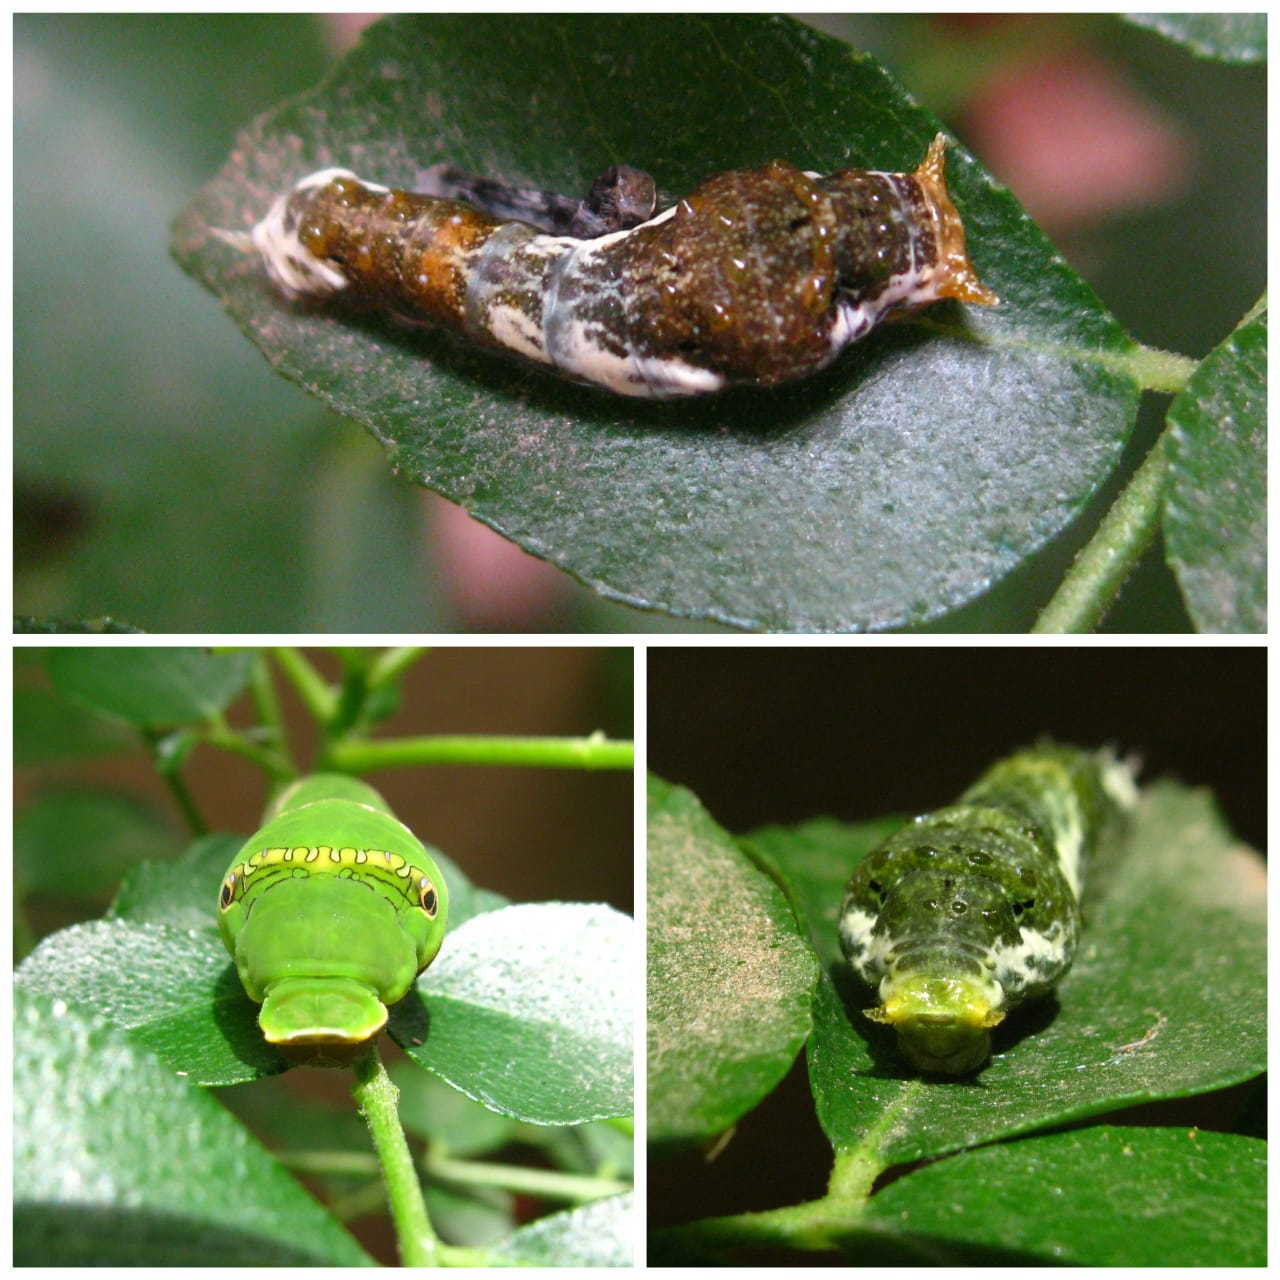 Caterpillars go through several developmental stages, and can look quite different in each phase. This is the caterpillar of the common Mormon butterfly on a curry leaf plant. In the earlier stages (top and bottom right), the caterpillar resembles bird poop to escape predation. In the bottom left panel, the caterpillar has developed eye-spots — another strategy to deter would-be predators. 